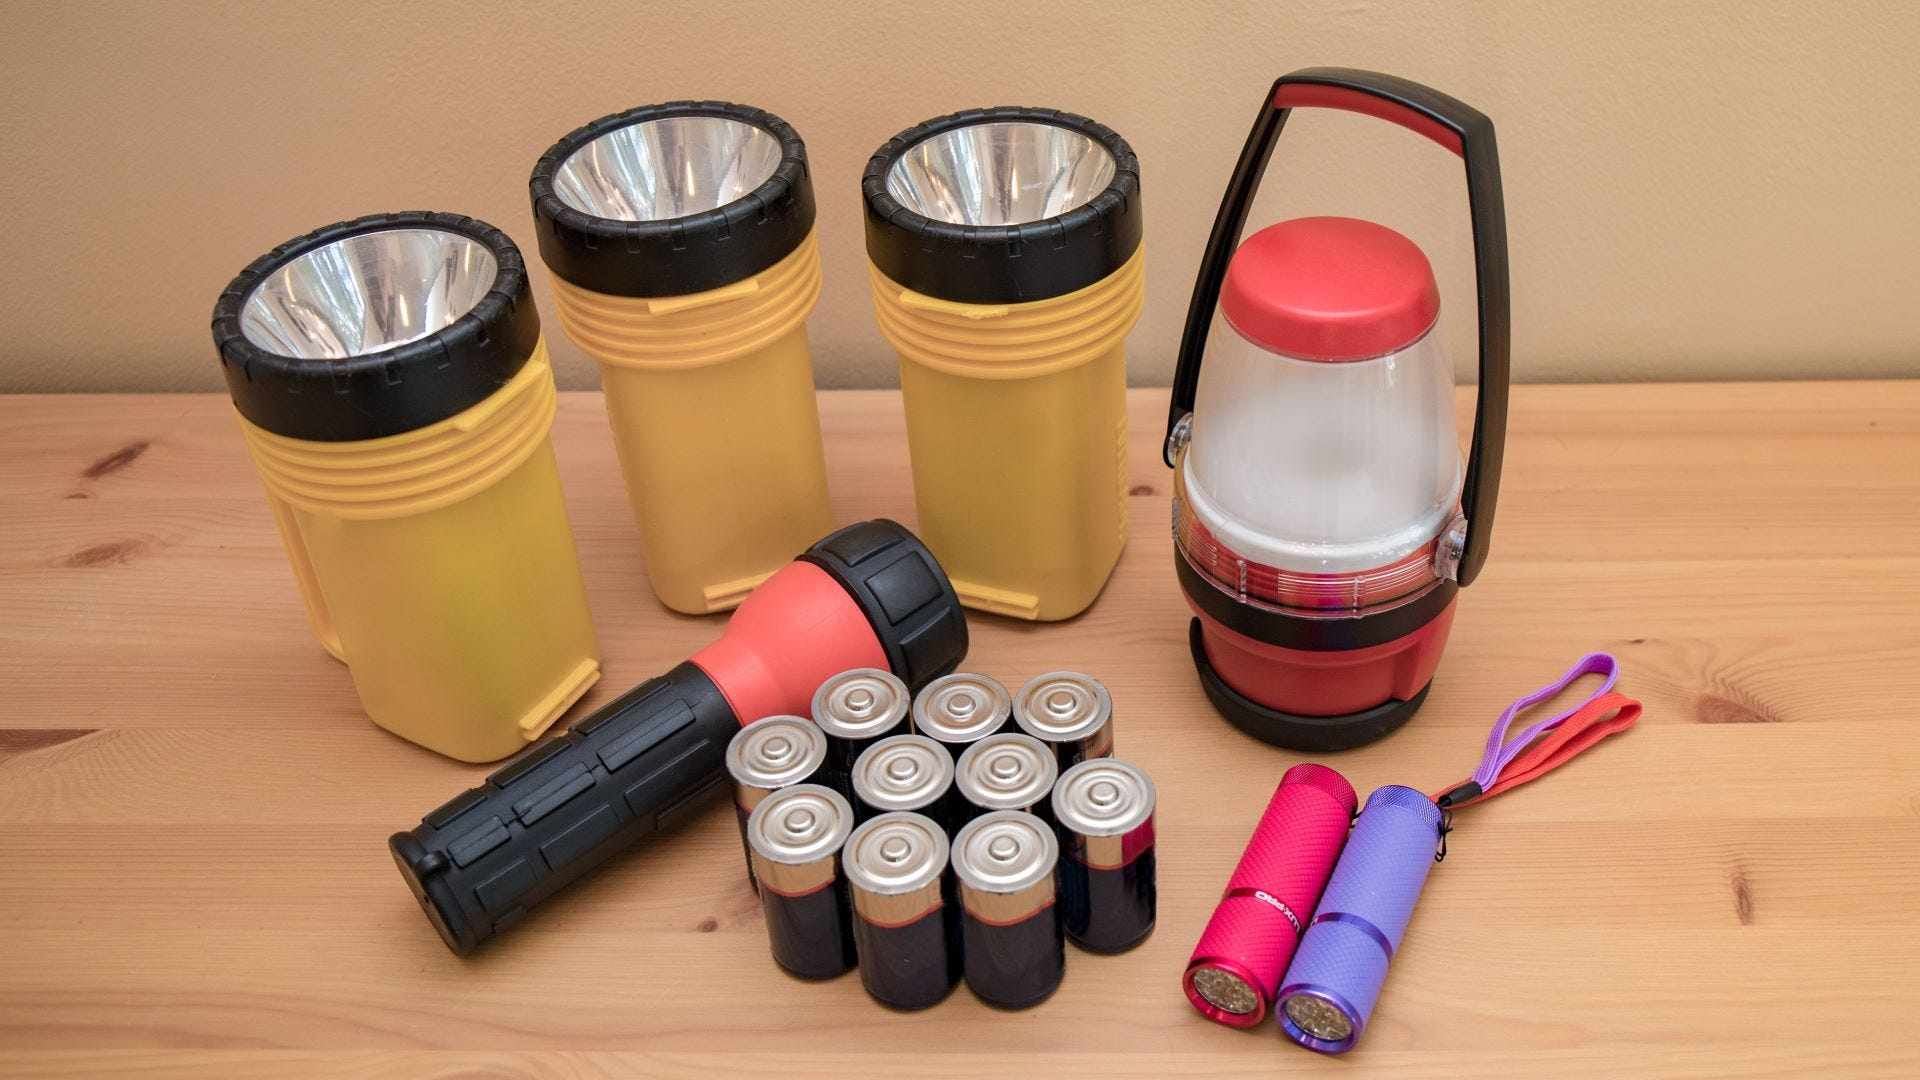 Six flashlights of different sizes, a lantern, and a bunch of batteries on a table.